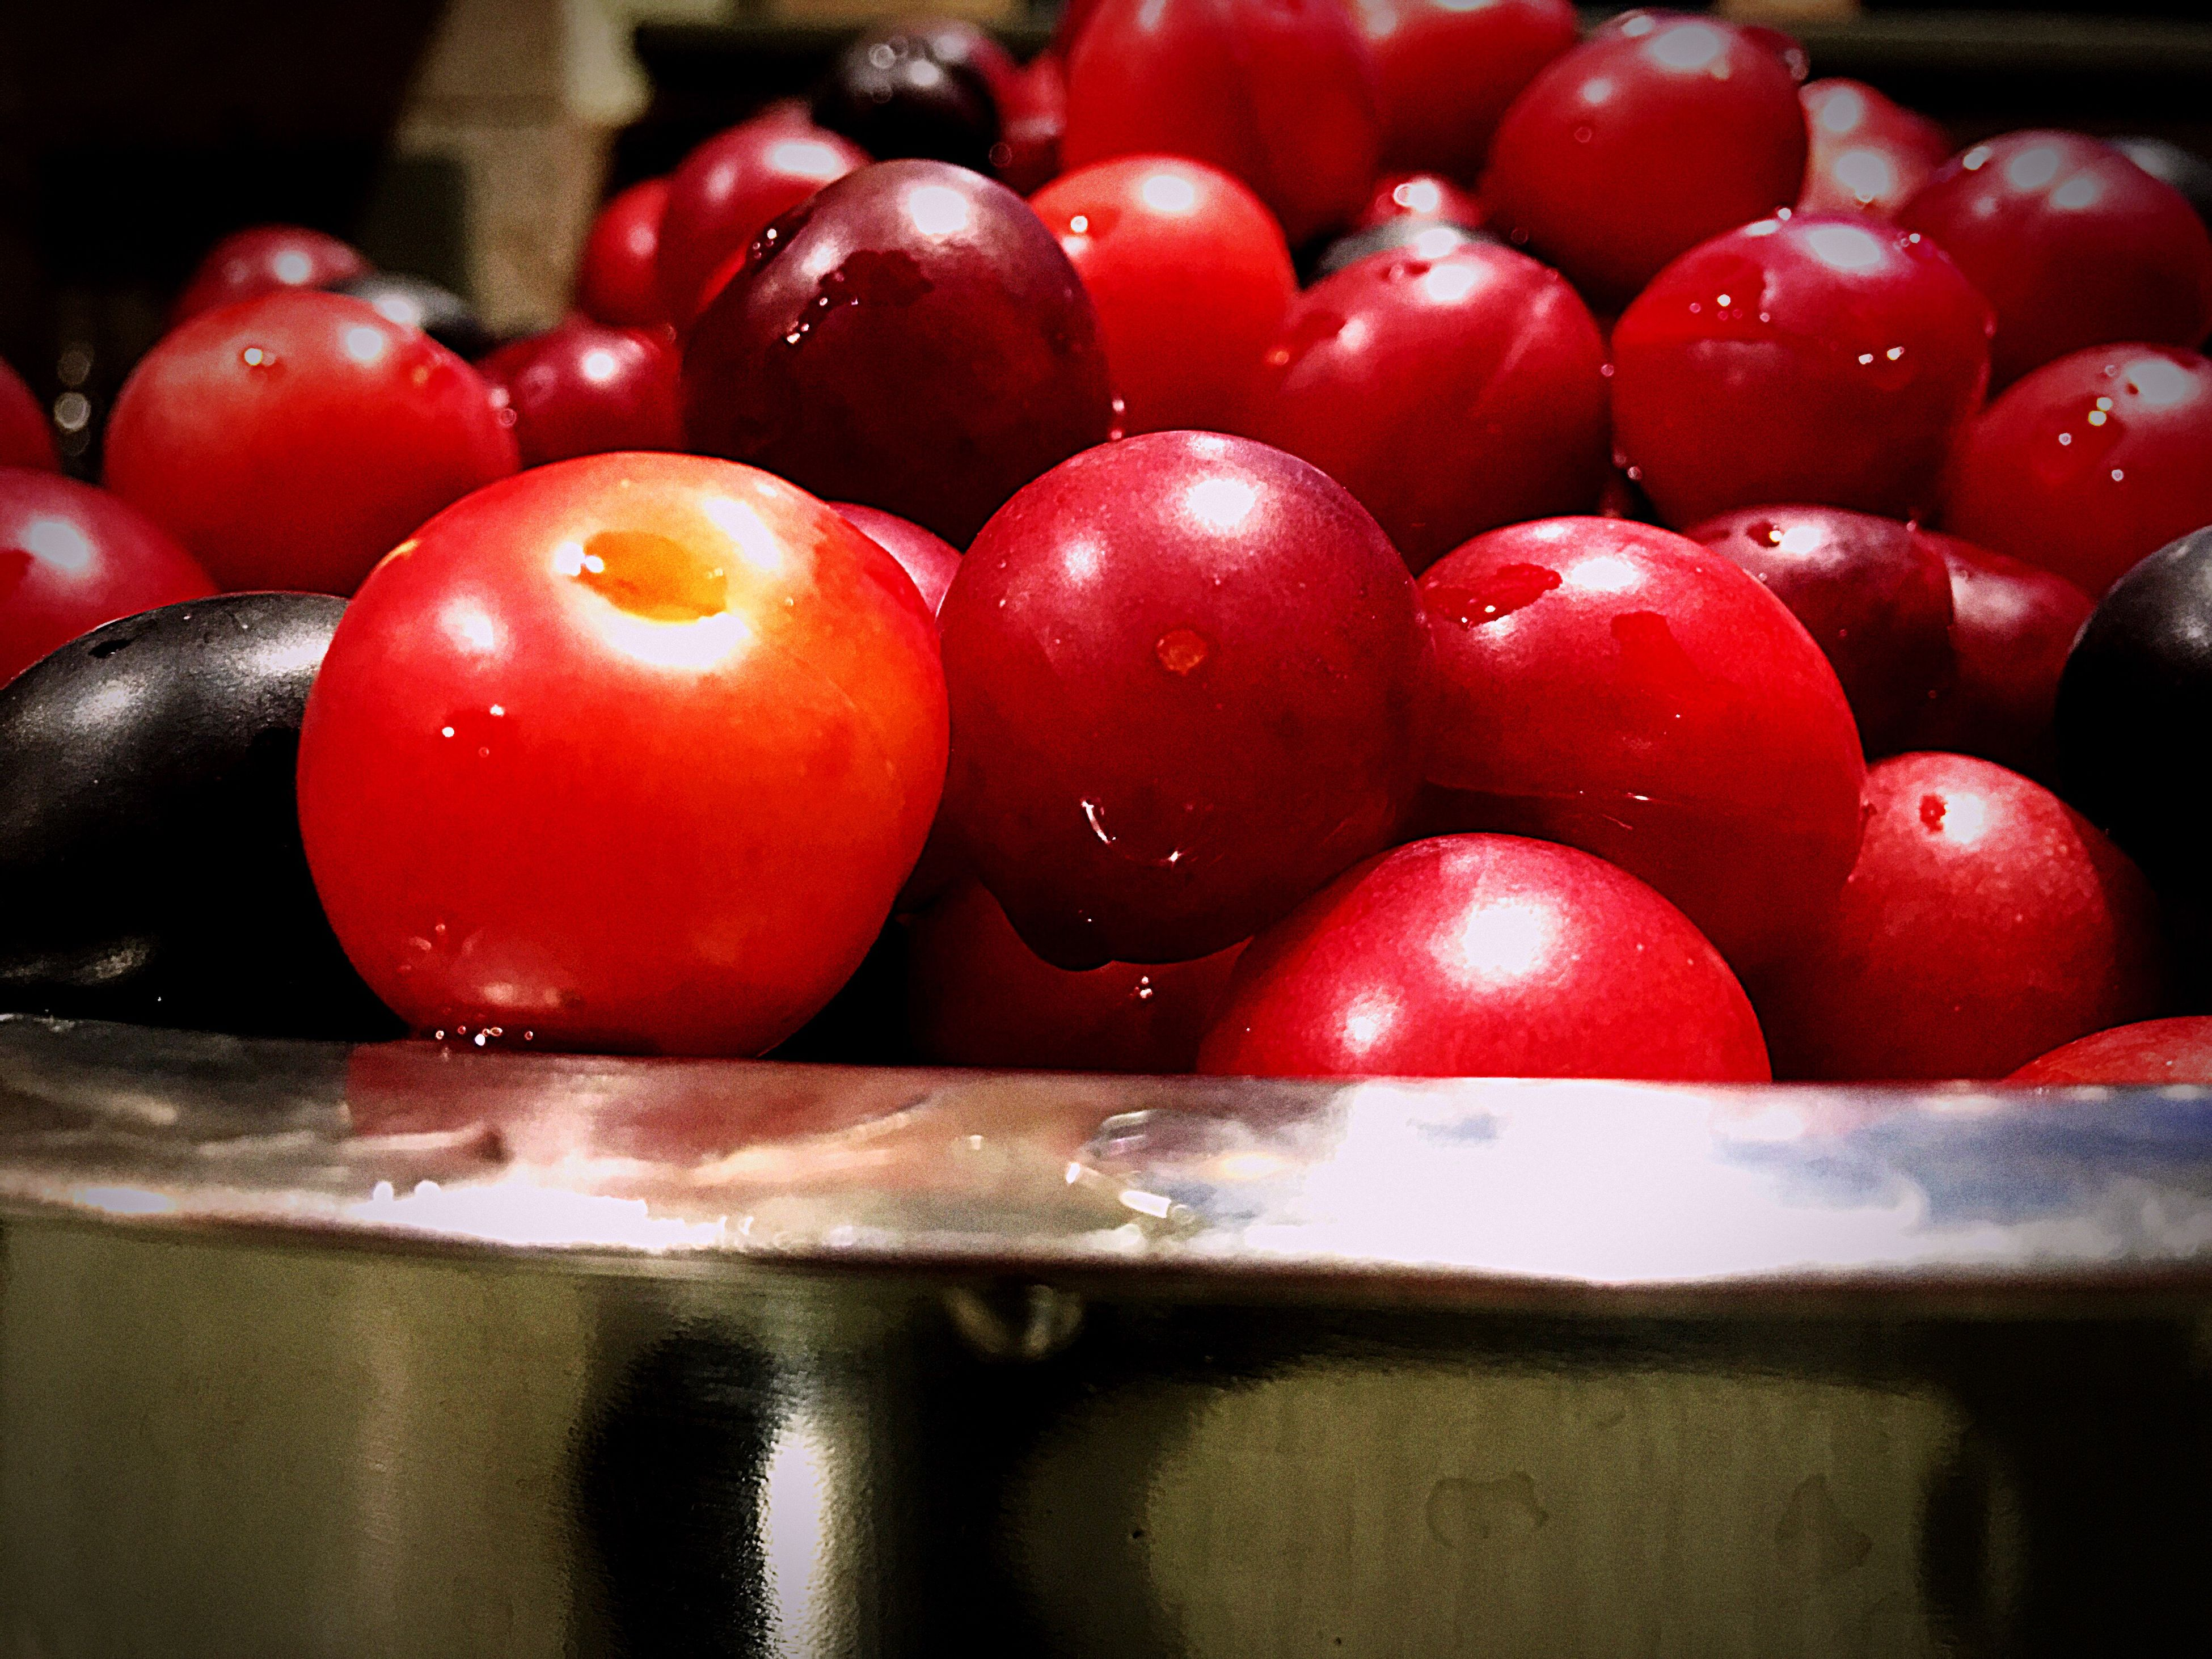 food and drink, red, freshness, food, indoors, fruit, sweet food, healthy eating, dessert, close-up, temptation, ready-to-eat, indulgence, serving size, cherry tomato, water, vibrant color, tray, organic, dessert topping, large group of objects